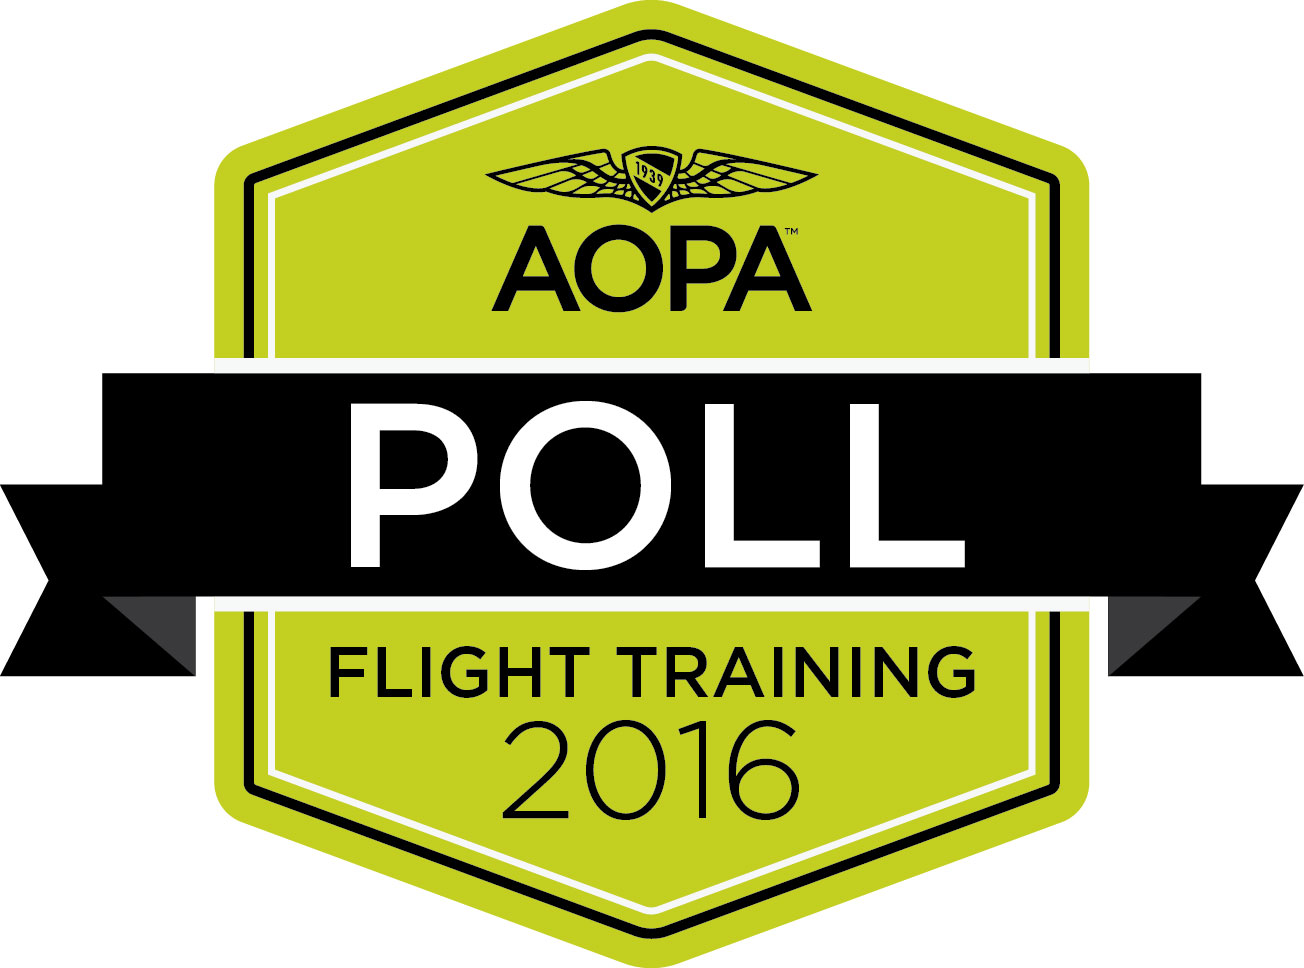 Flight Training Poll.